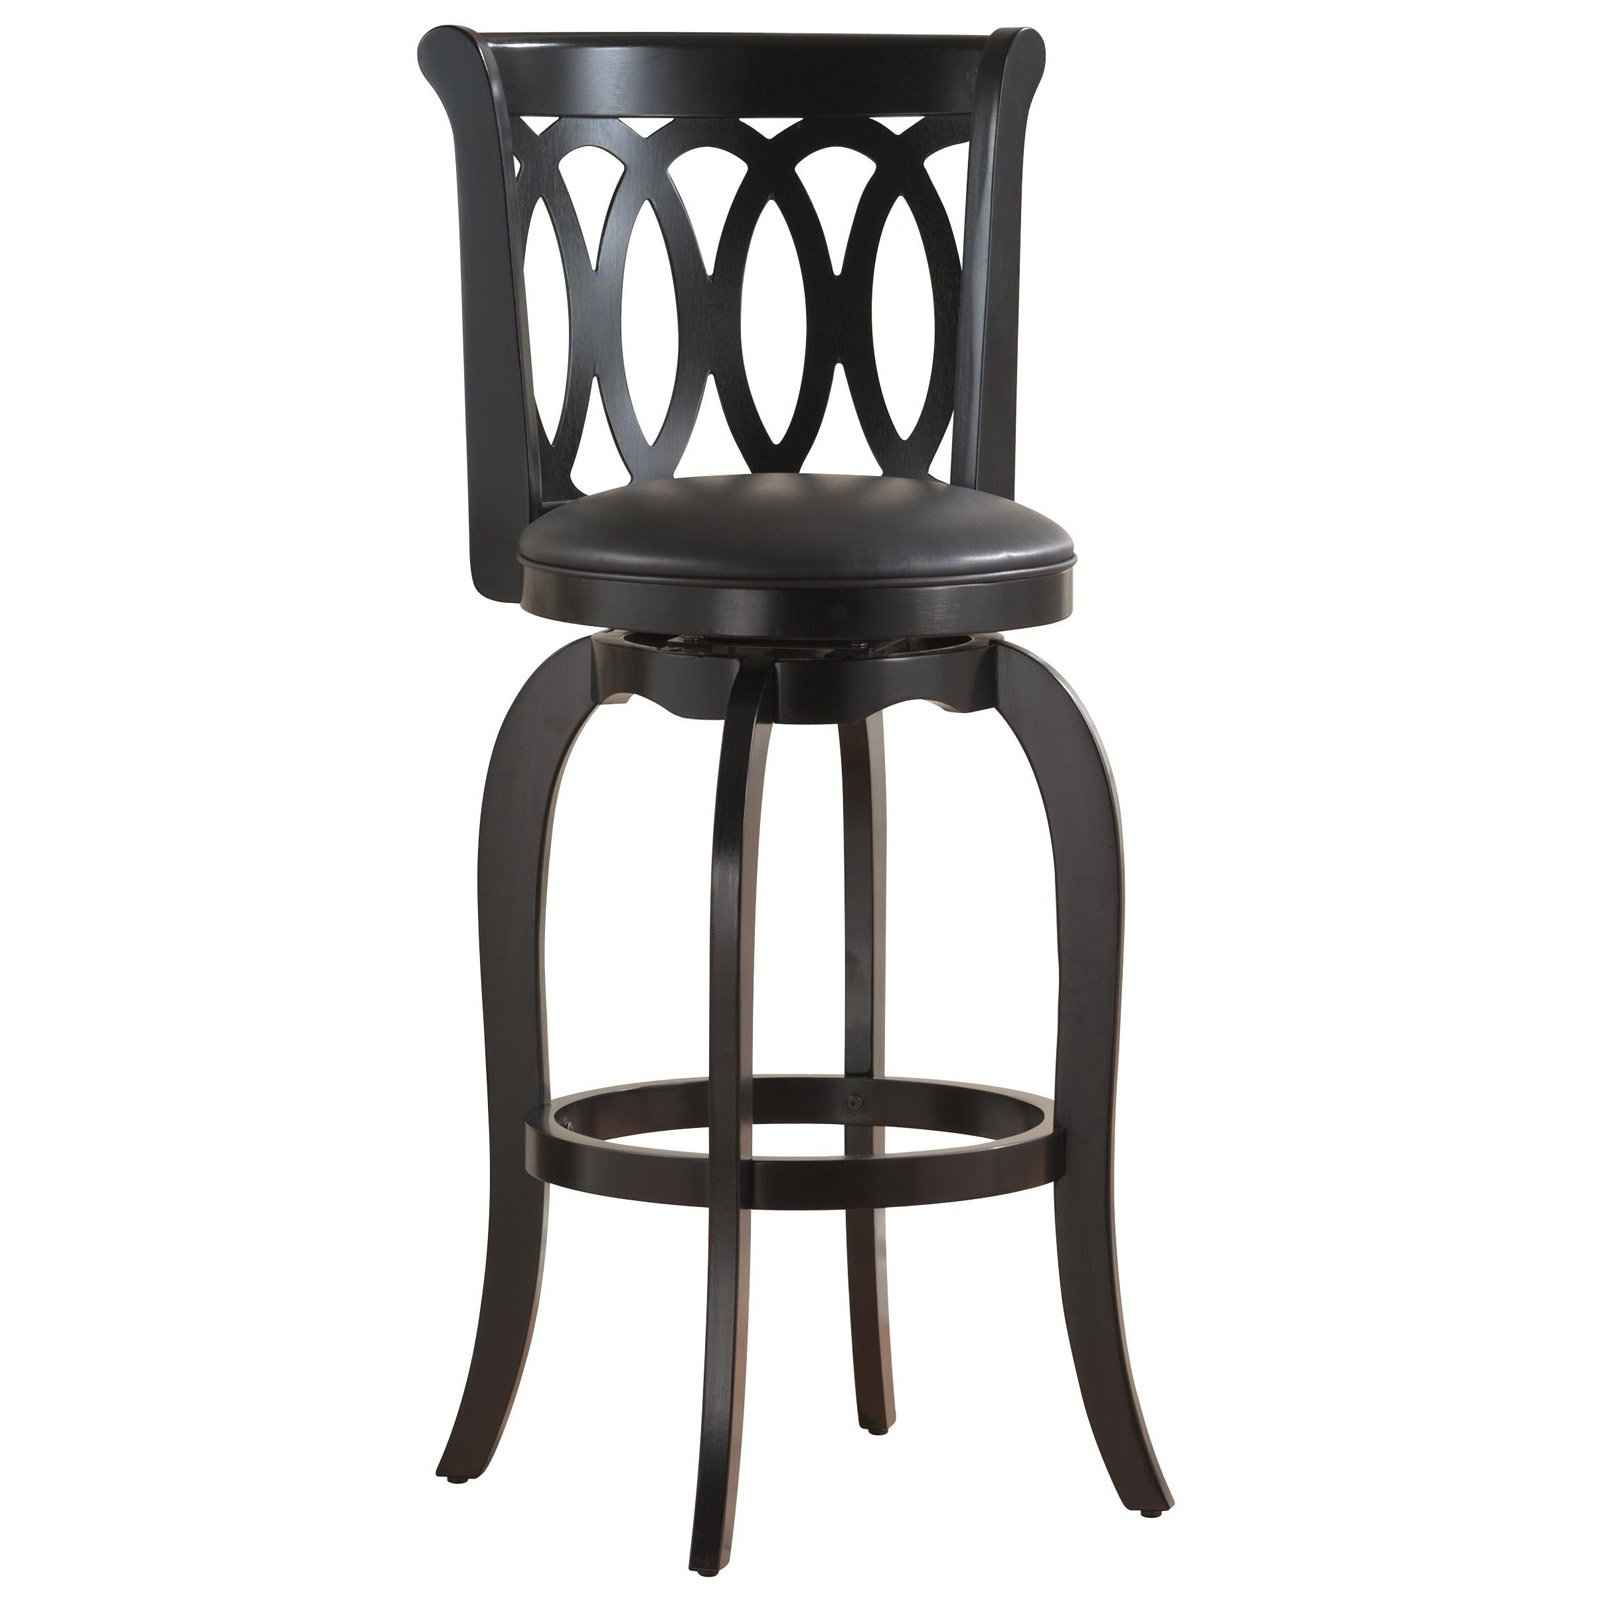 Cheap Black Barstools Cheap Bar Stools With Backs Products Review